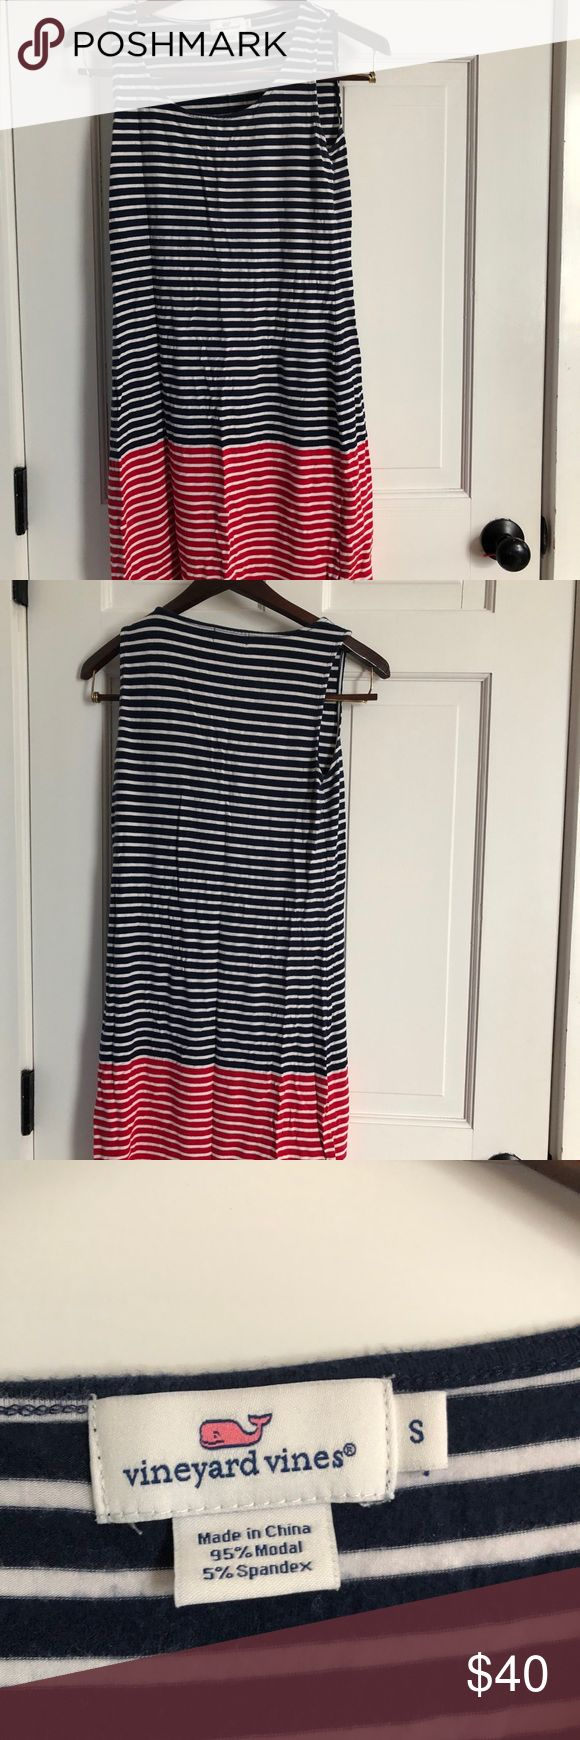 Vineyard Vine red, white, and blue dress Vineyard vines S incredibly soft dress. Red, white, and blue stripes. Perfect for summer barbecues! Vineyard Vines Dresses Mini